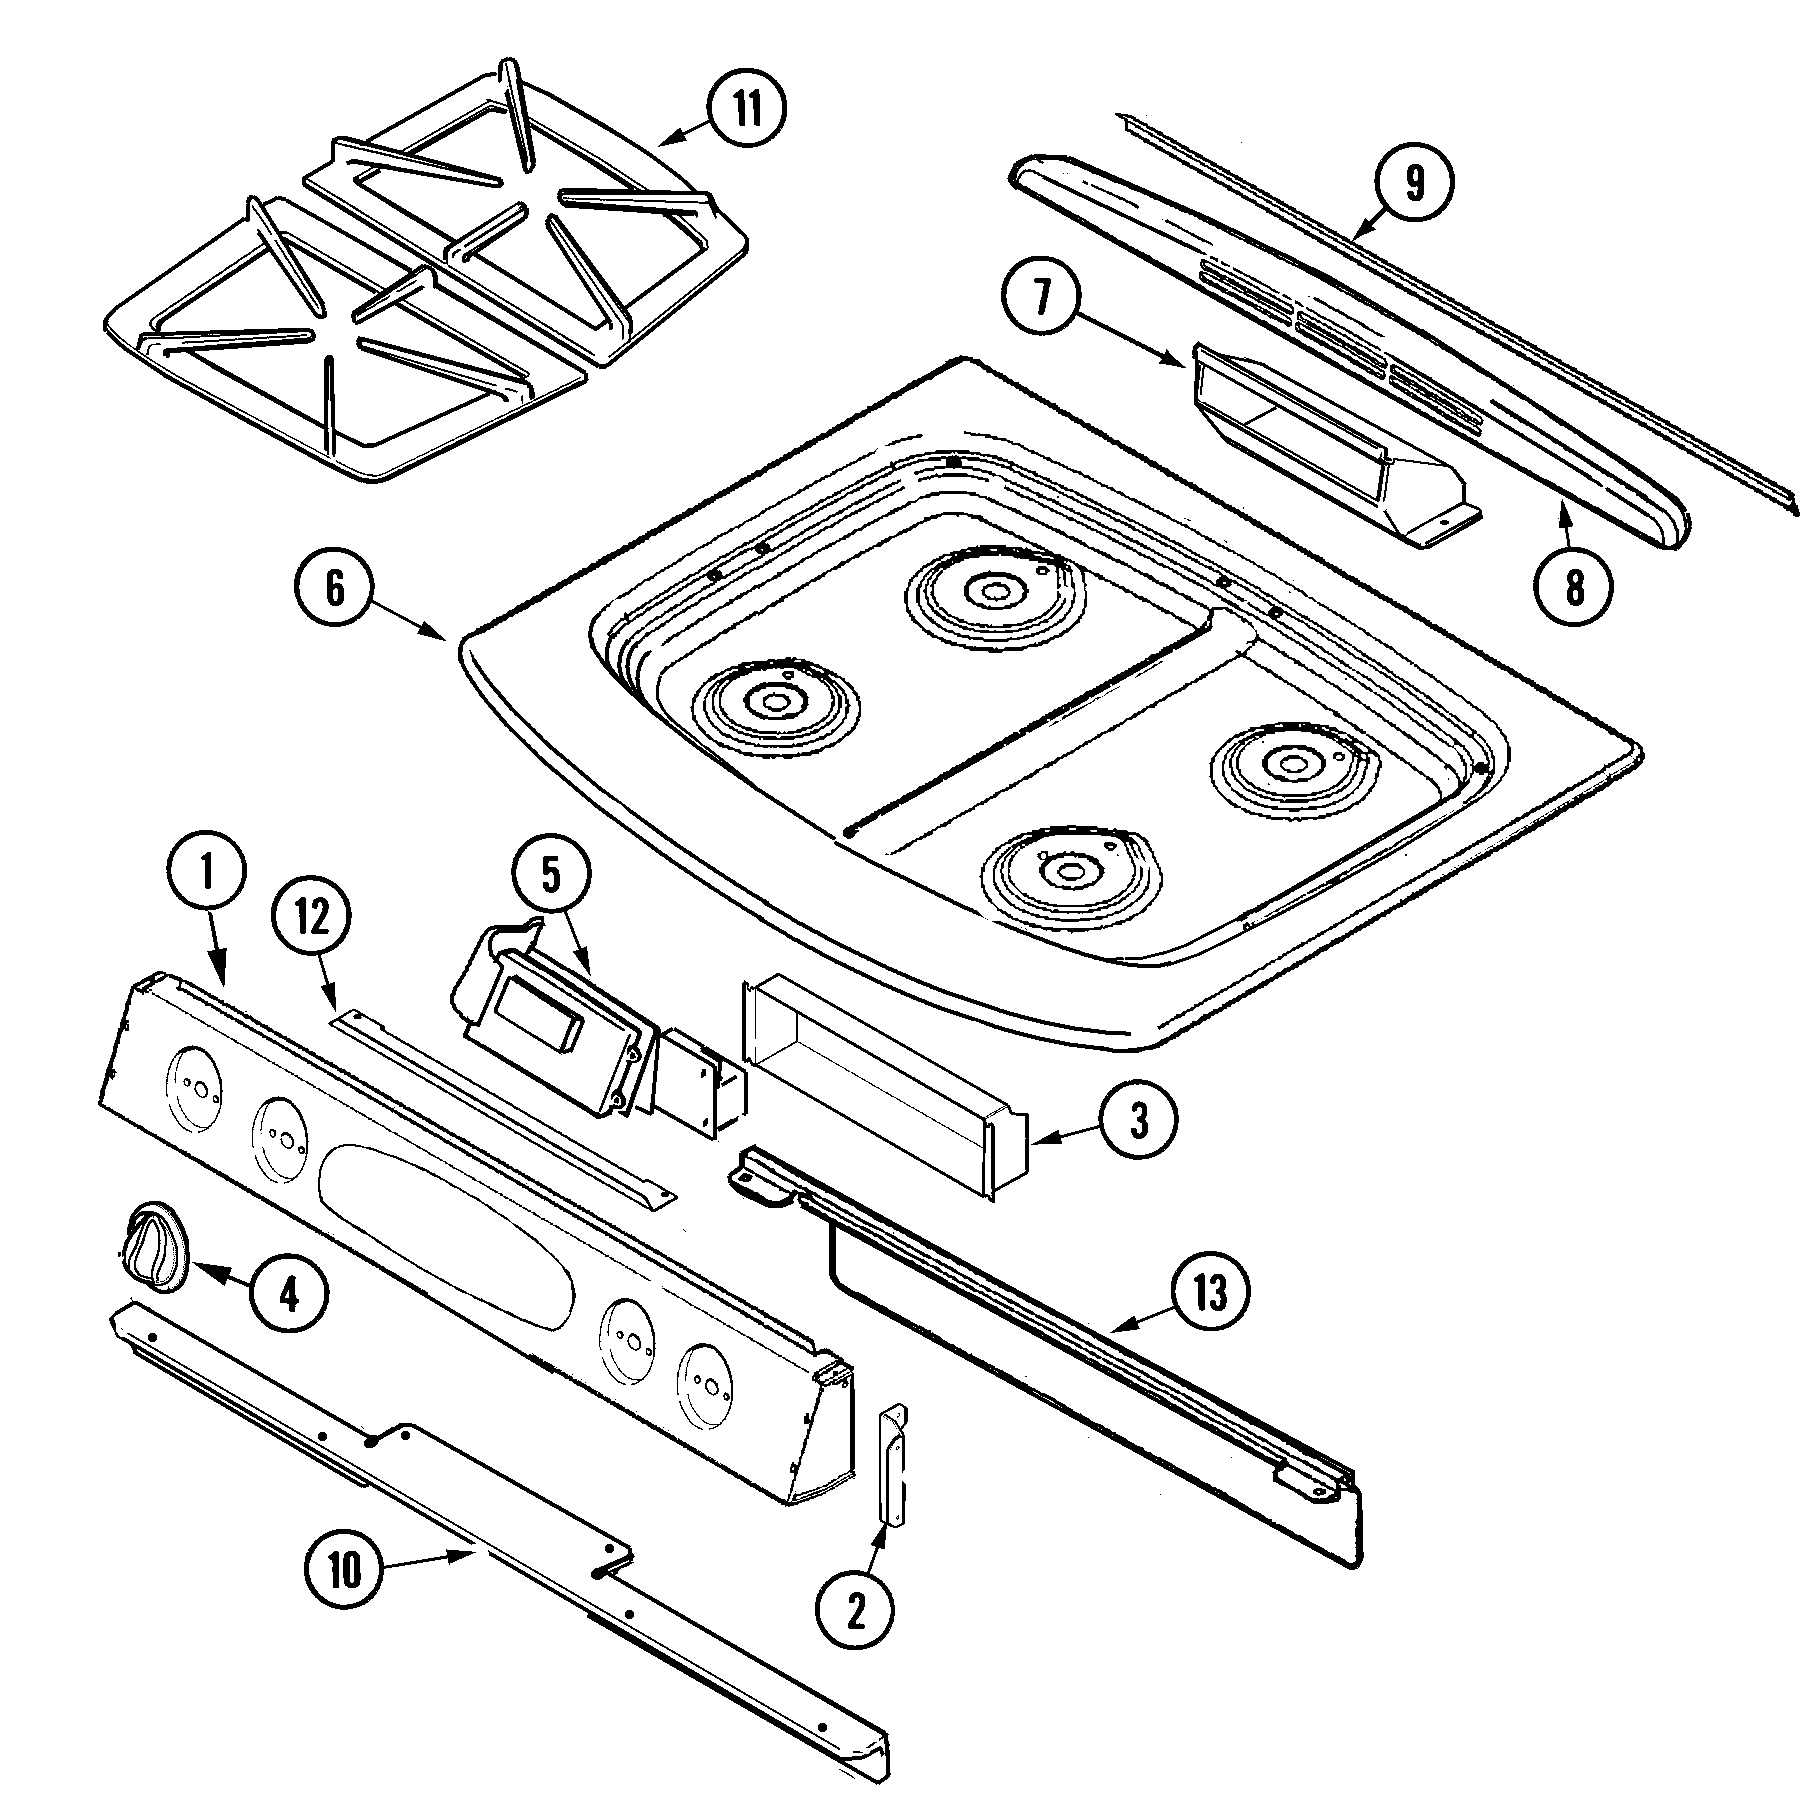 JGS8750ADB Slide-In Gas Range Top assembly Parts diagram